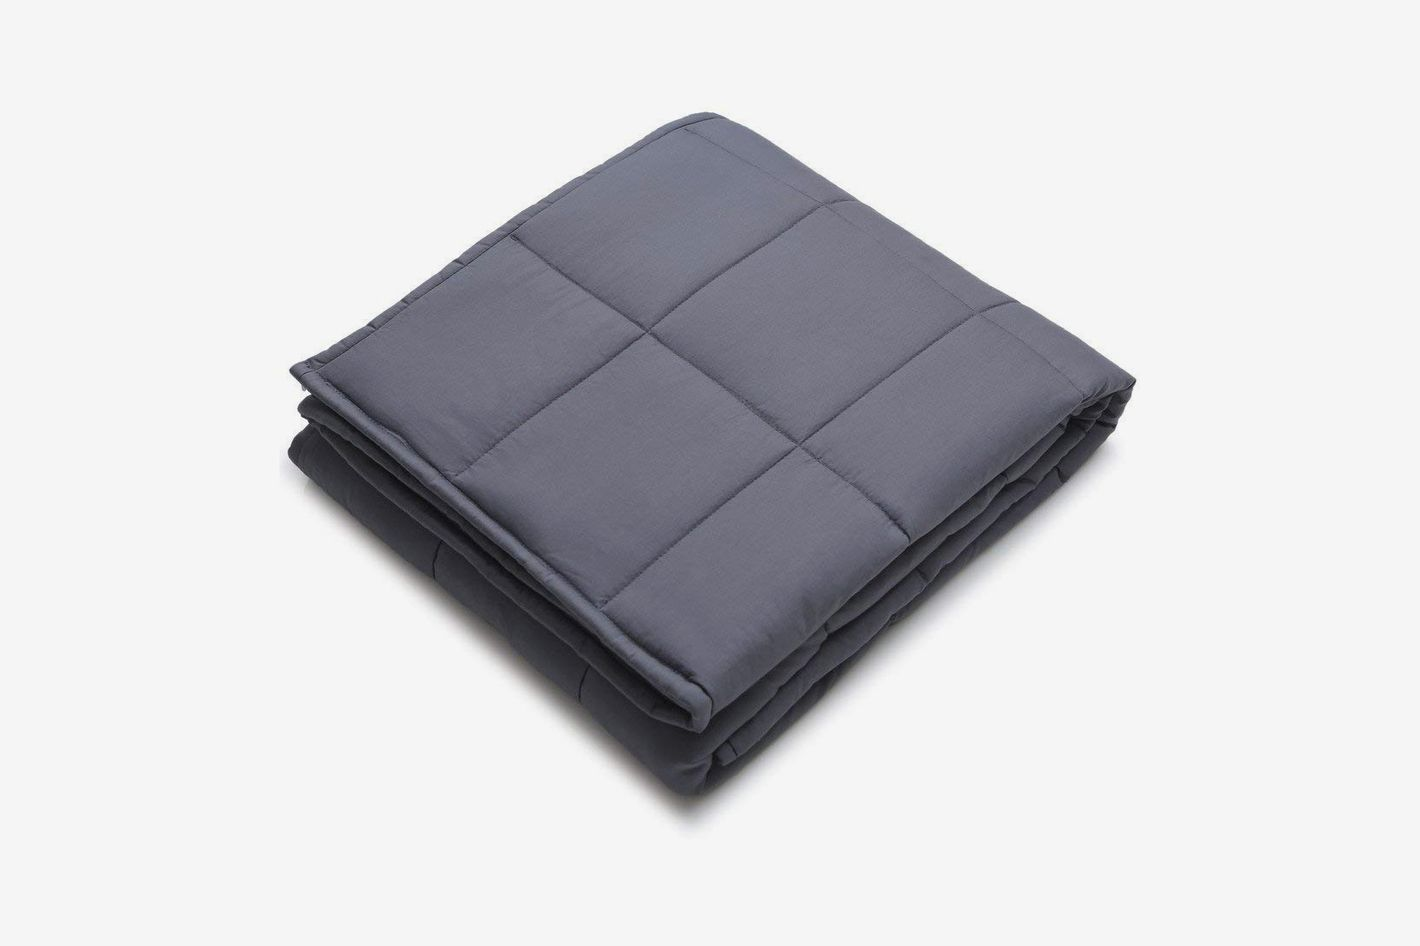 ynm weighted blanket 17 lbs 60x80 queen size